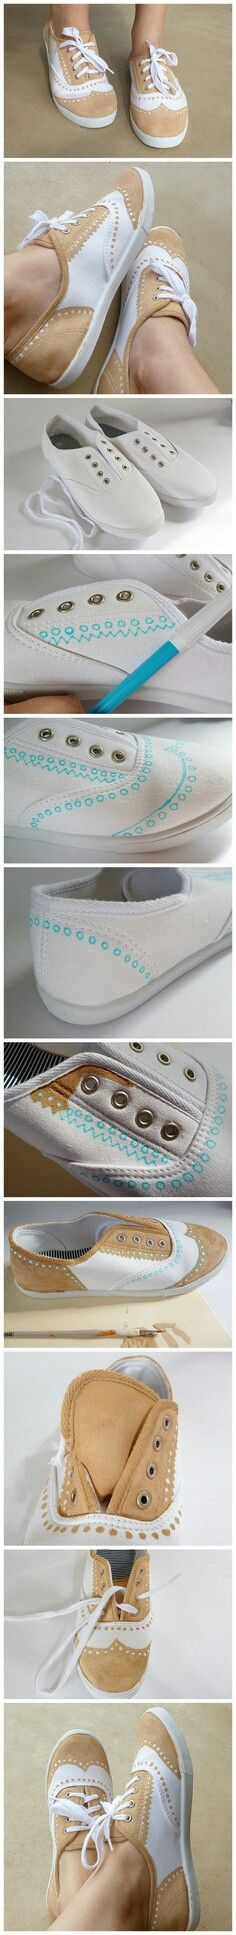 Home made shoes-can you believe it?!!